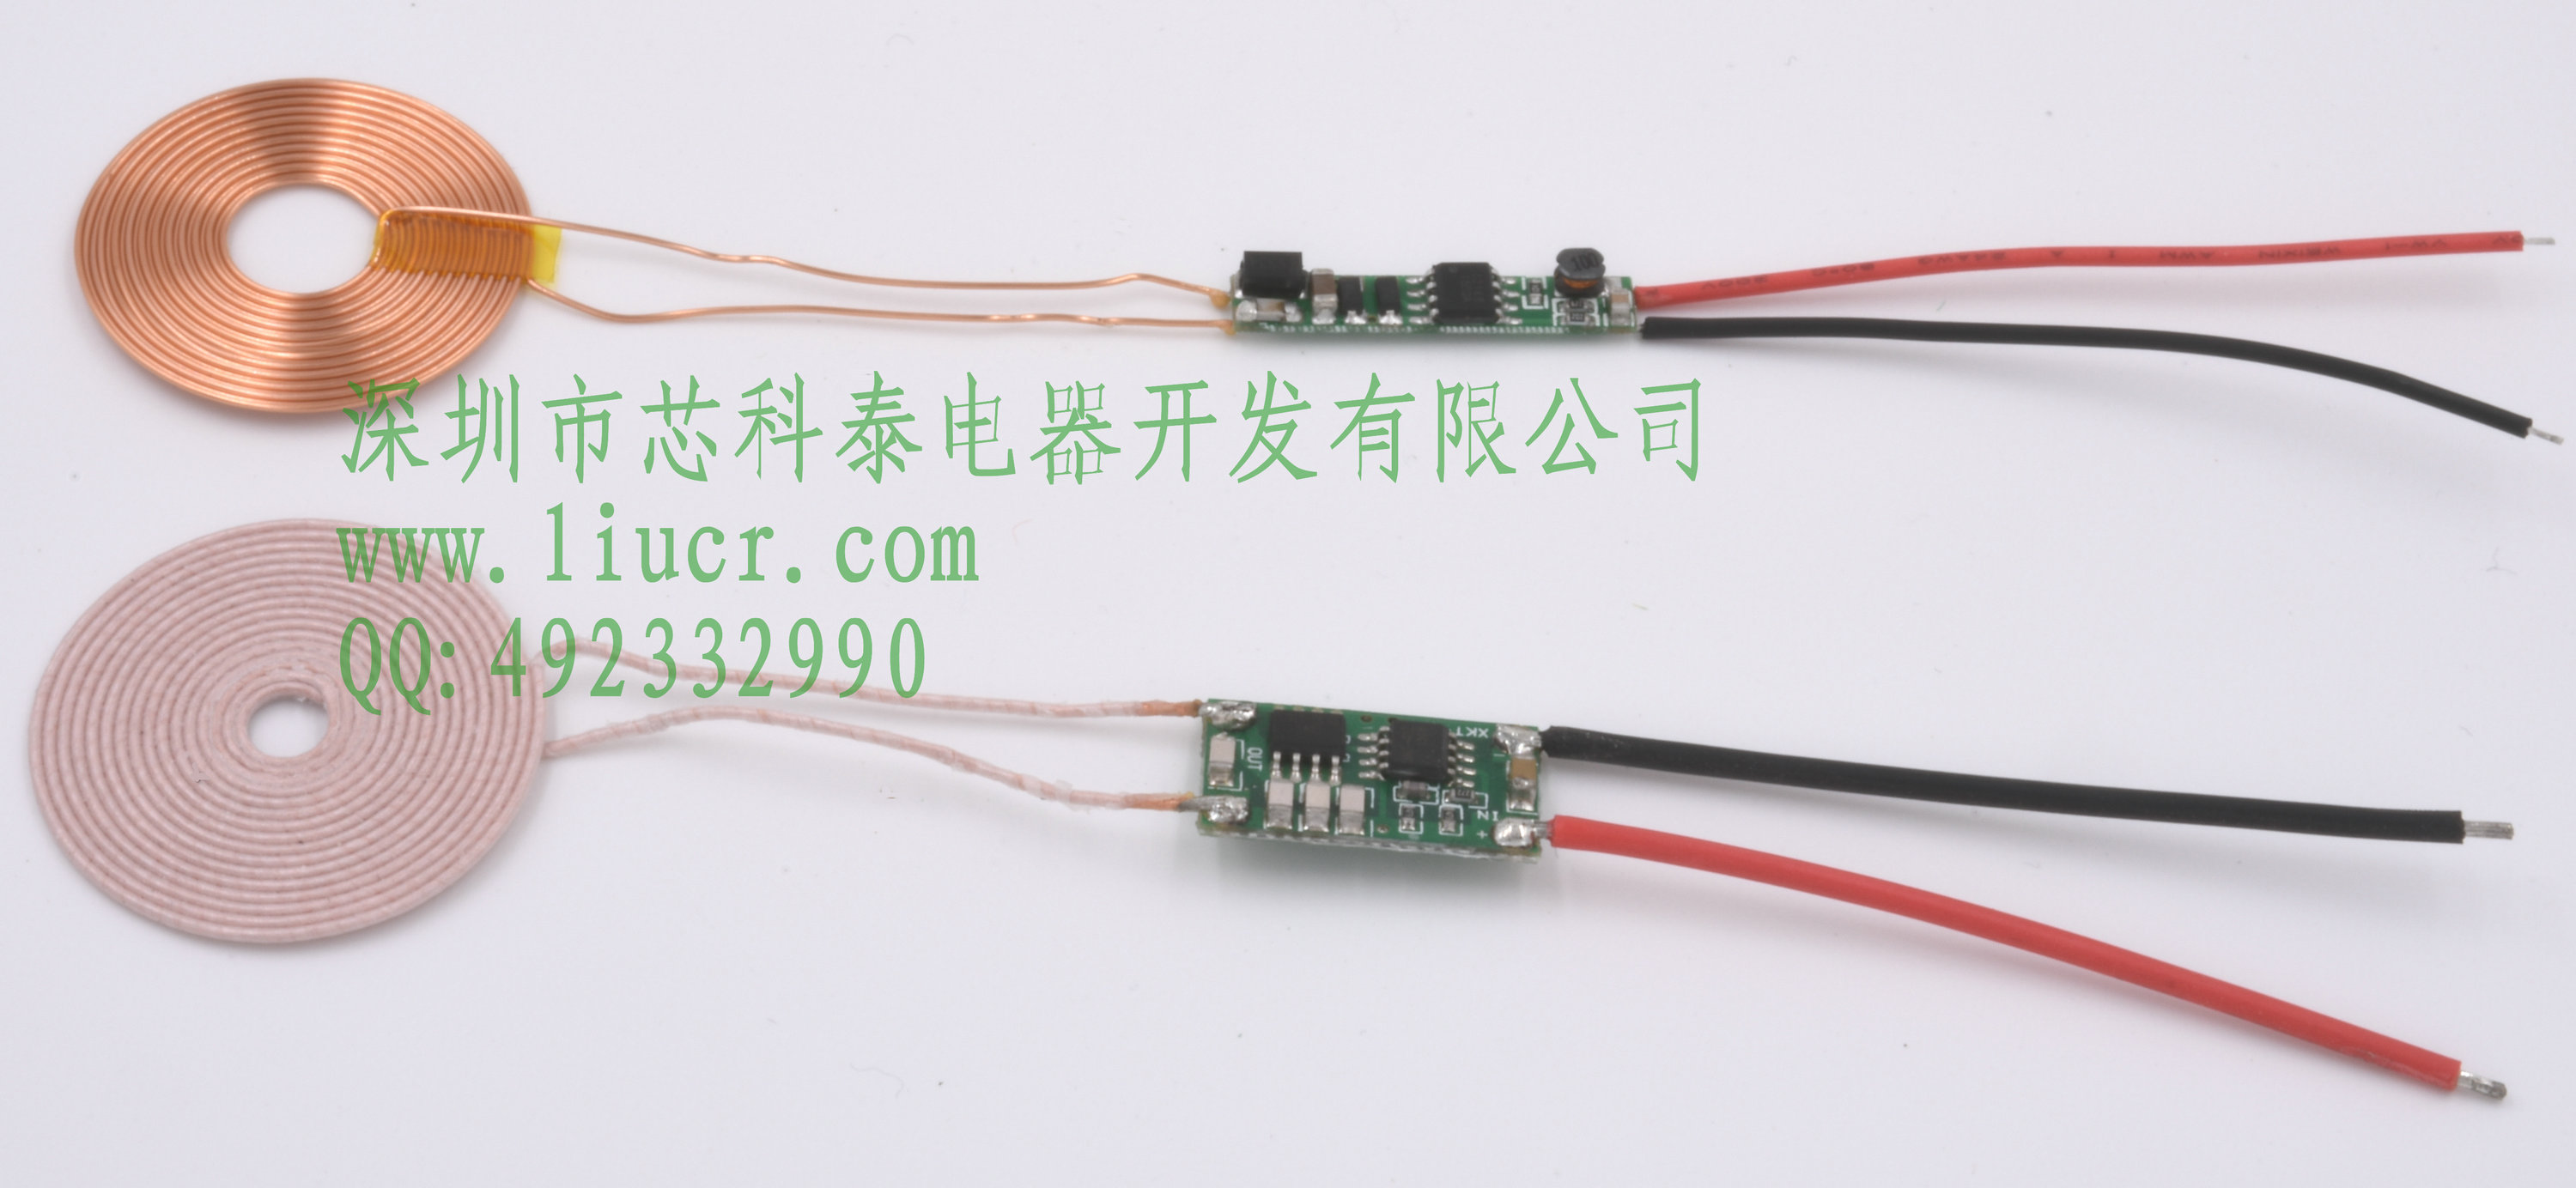 hight resolution of 5v500ma usb large current wireless power supply module xkt412 chip circuit diagram